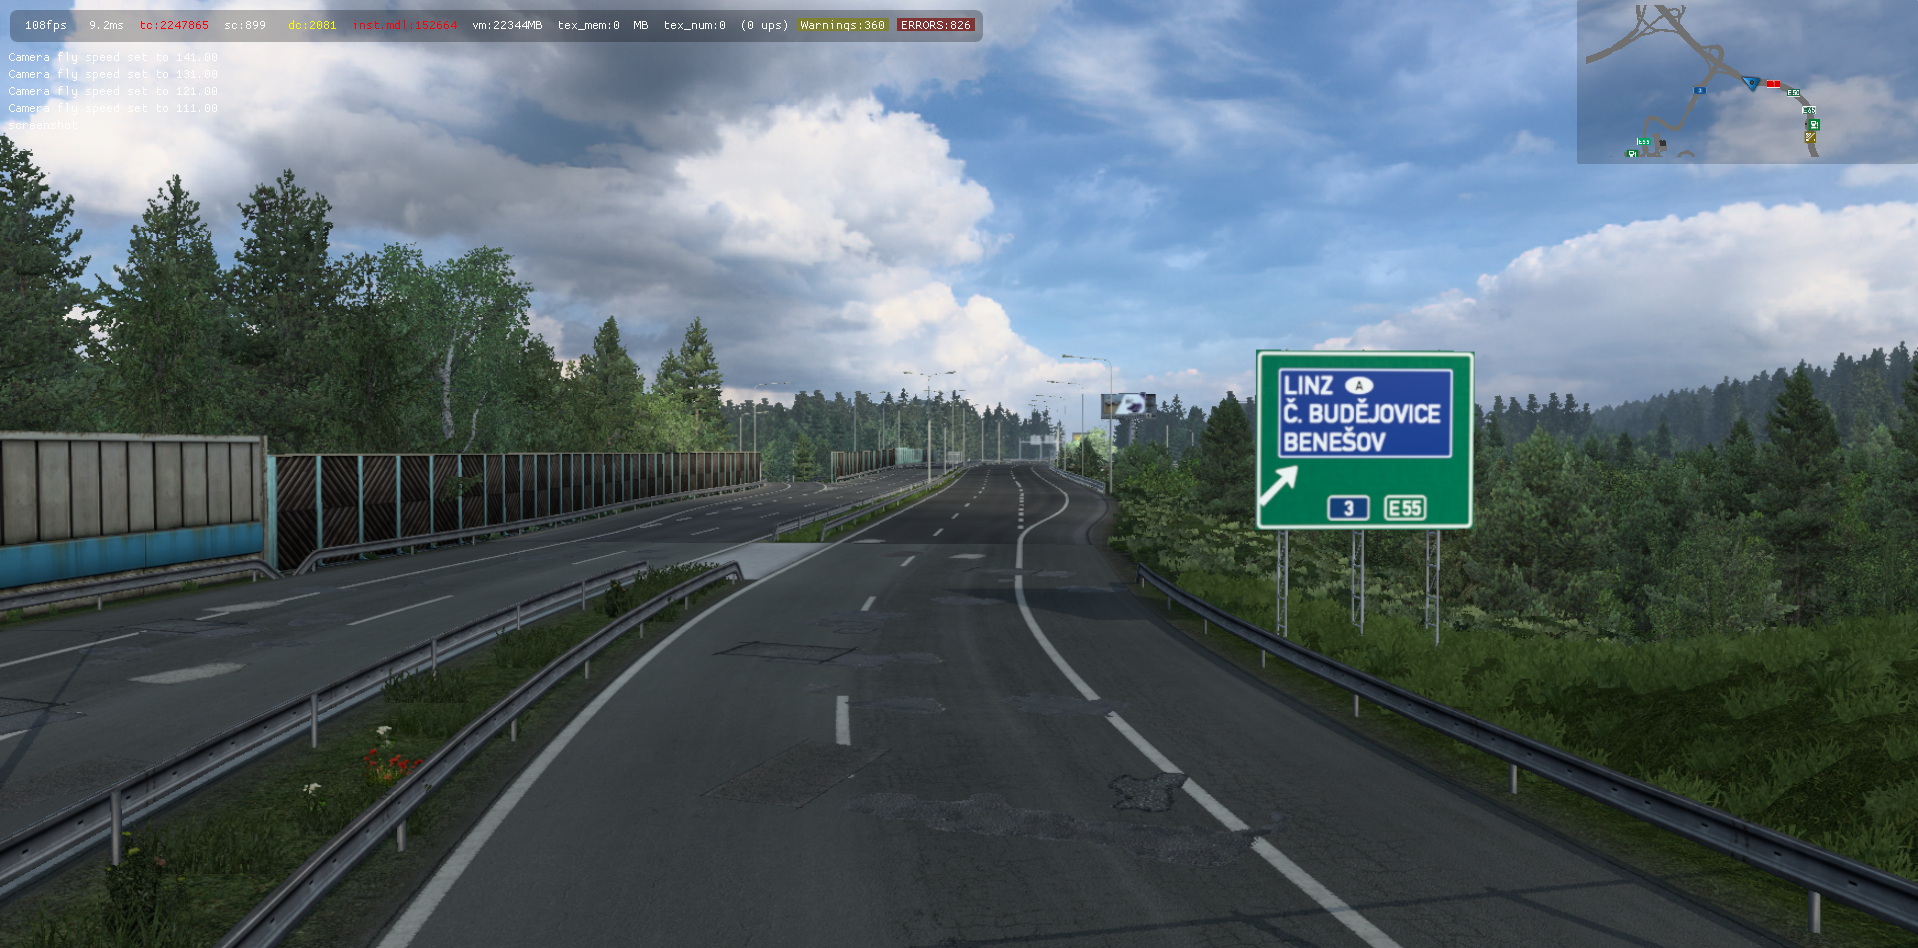 ets2_20210725_234704_00.png